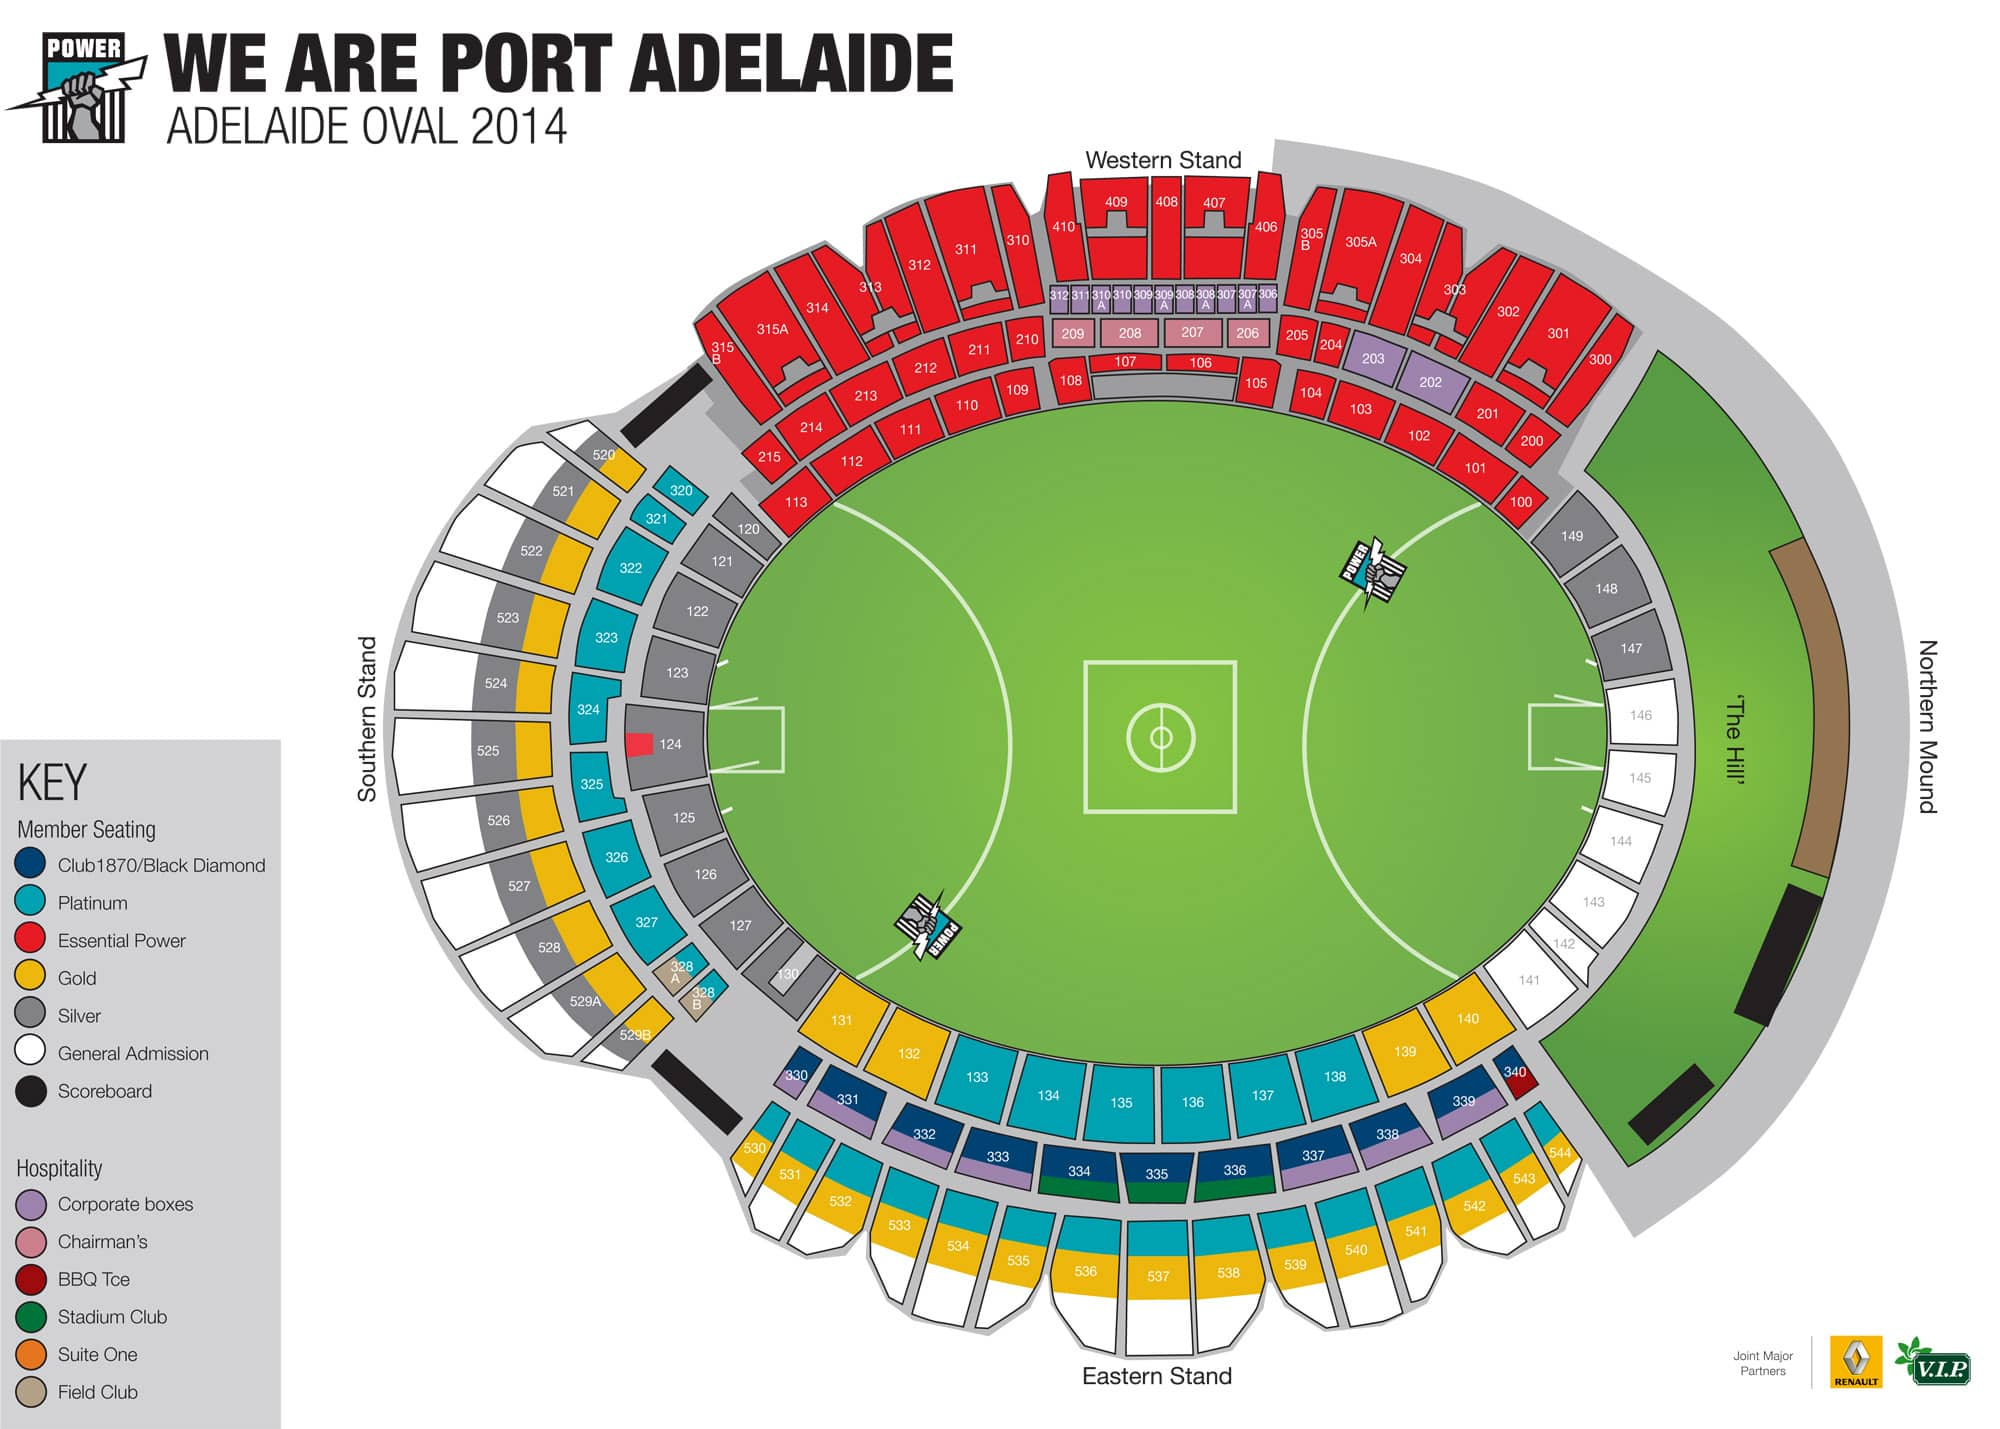 Adelaide Oval Seating Map Adelaide Oval update   August 9   portadelaidefc.com.au Adelaide Oval Seating Map